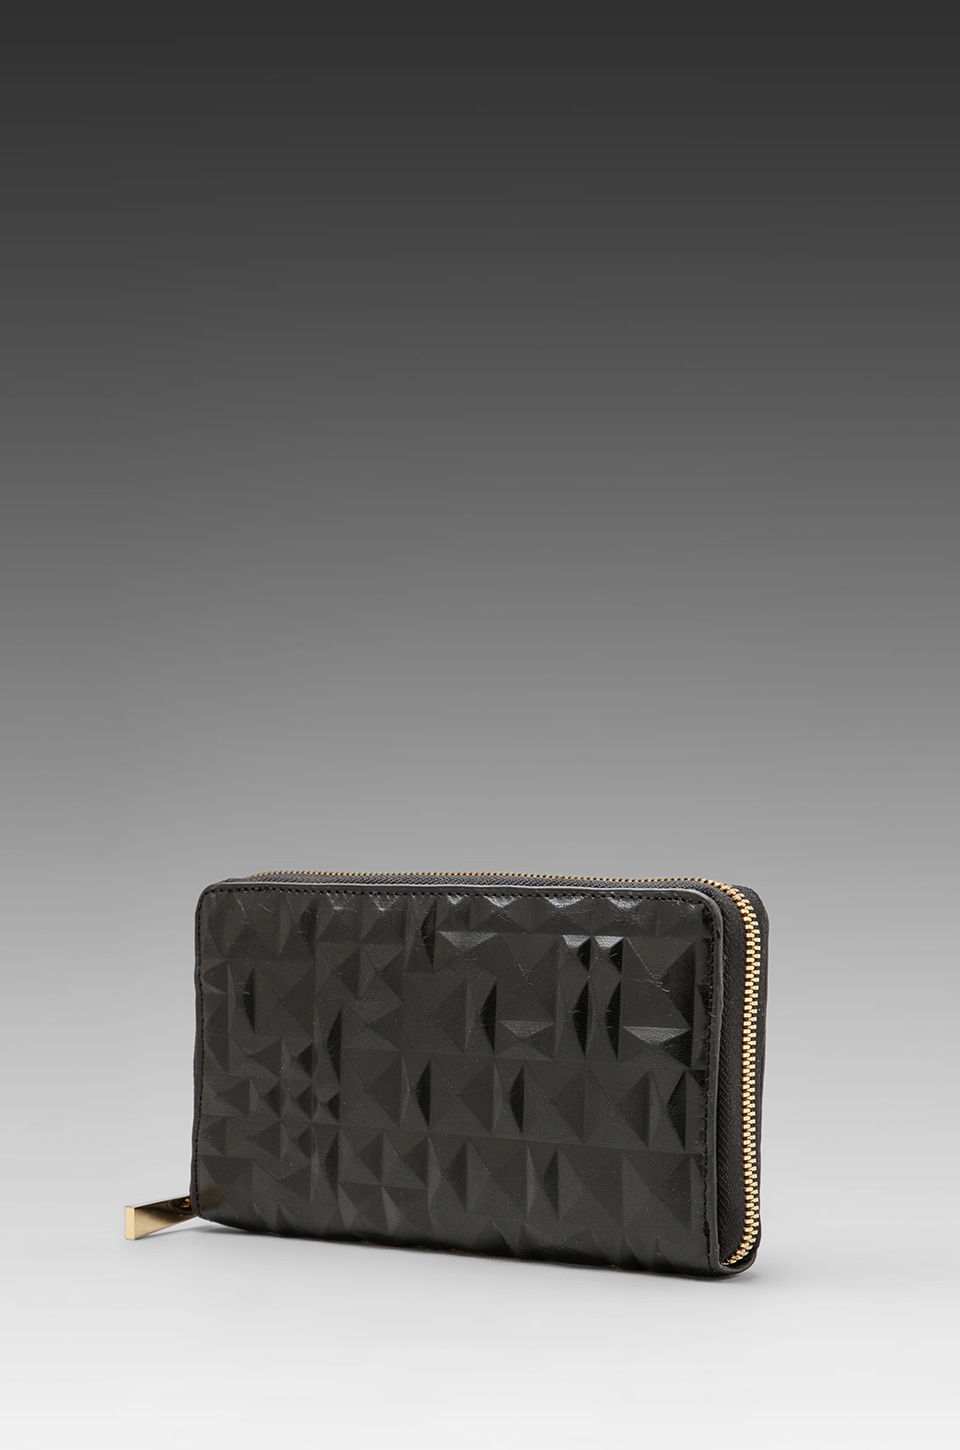 CC Skye Malibu Zip Wallet in Tribal Black